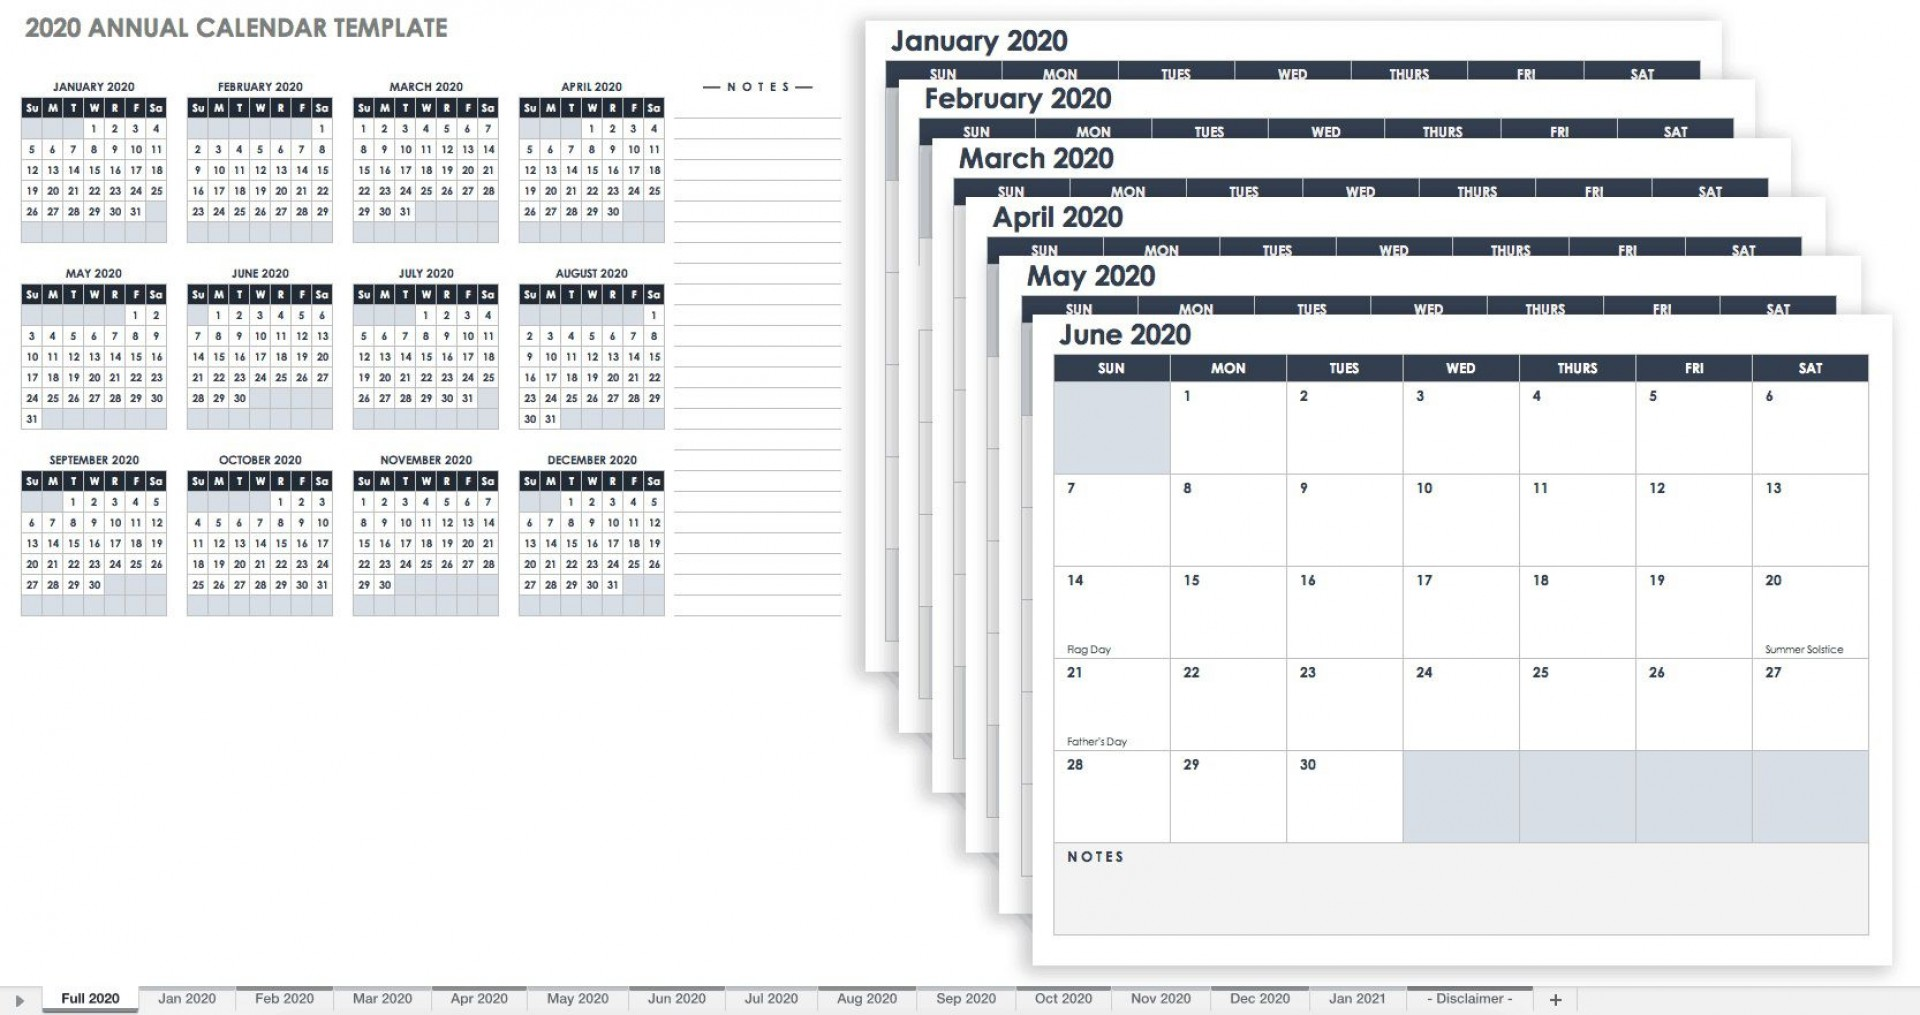 008 Outstanding Free Calendar Template Excel Photo  Monthly 2020 Perpetual 20191920